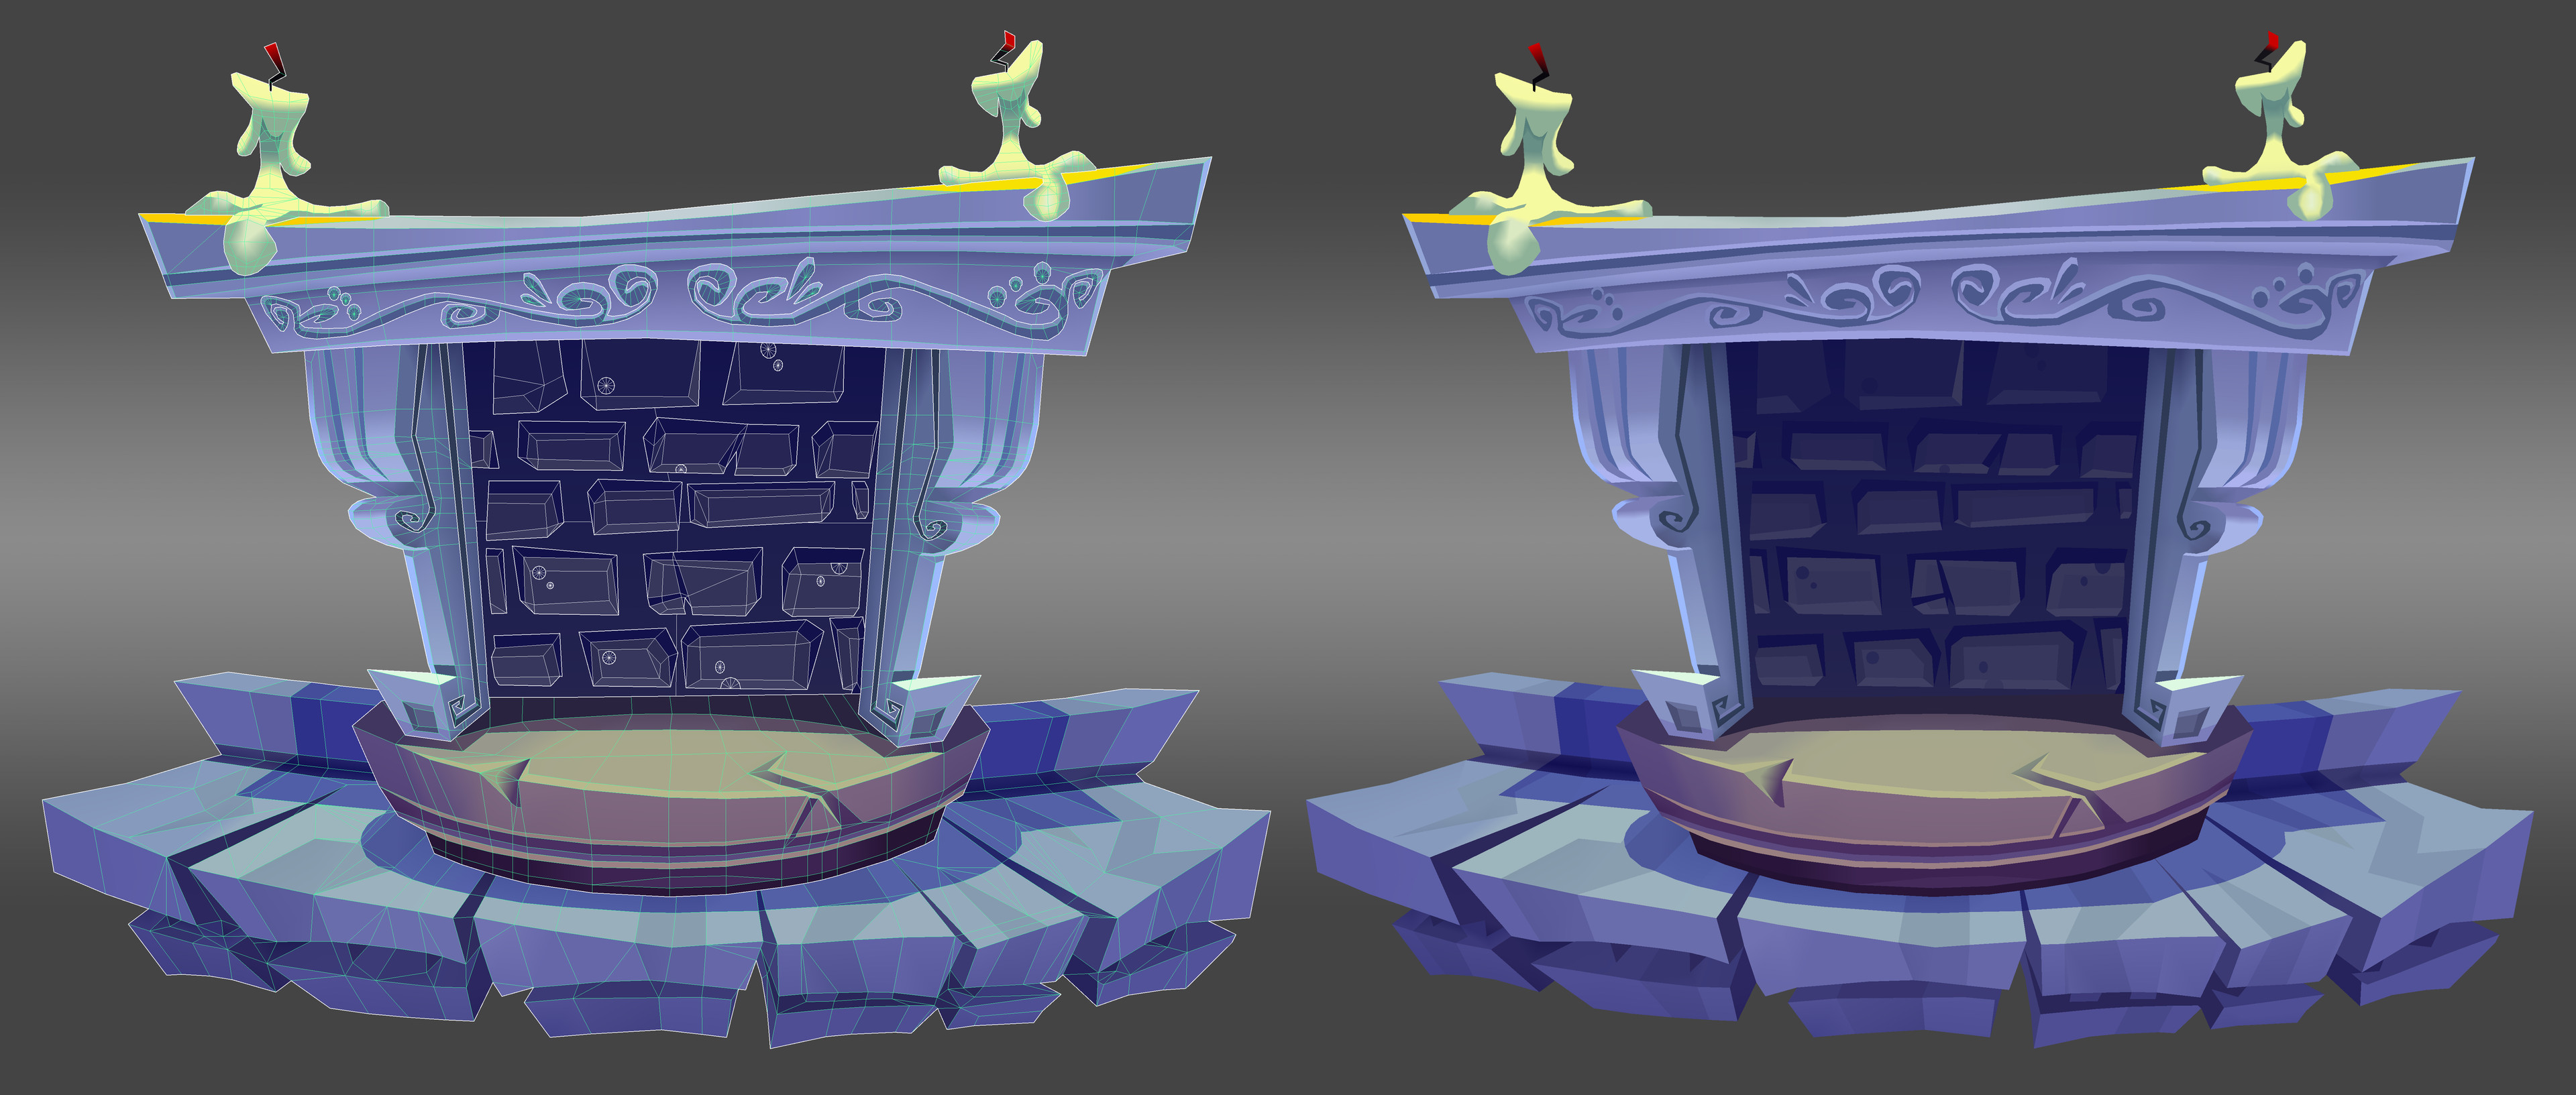 UI Fireplace: Vert colored 3D model